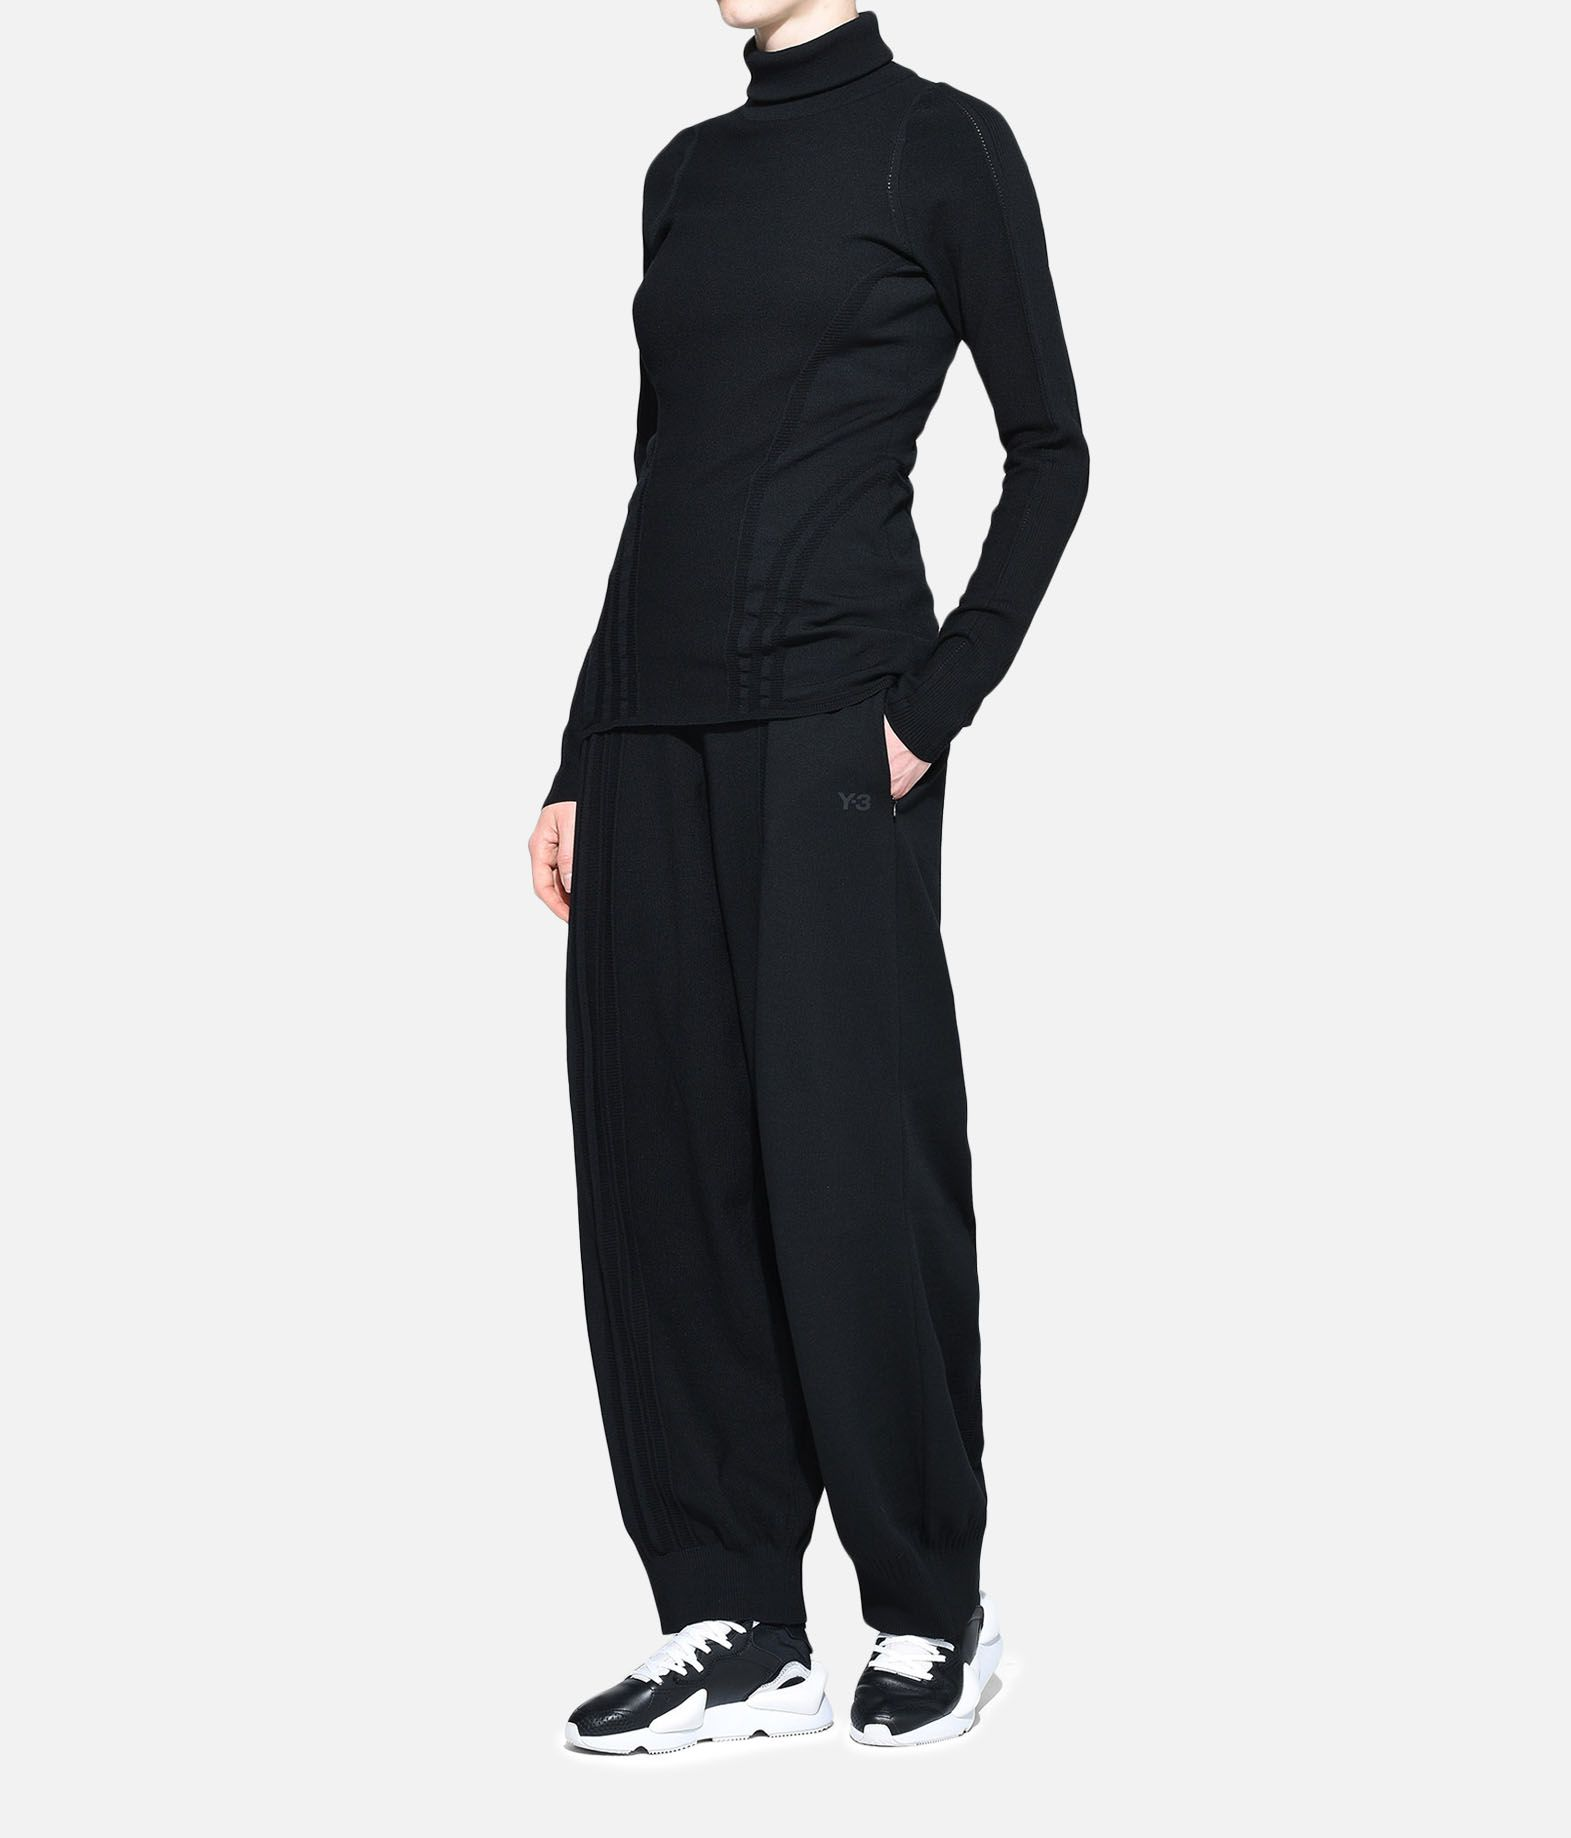 Y-3 Y-3 Tech Wool High Neck Tee Long sleeve t-shirt Woman a